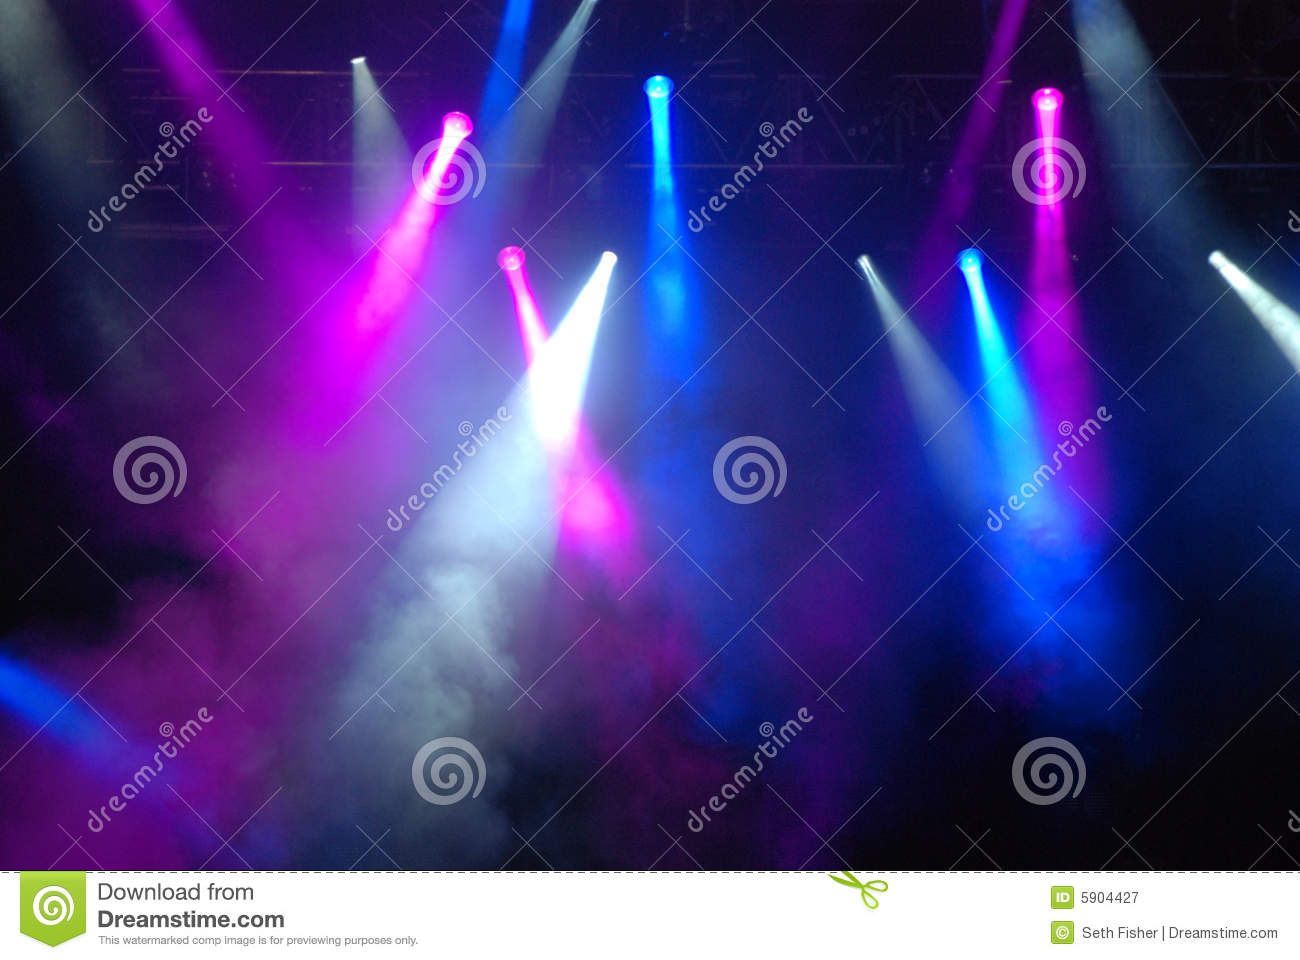 Concert Strobe Lights Royalty Free Stock Photography - Image: 5904427